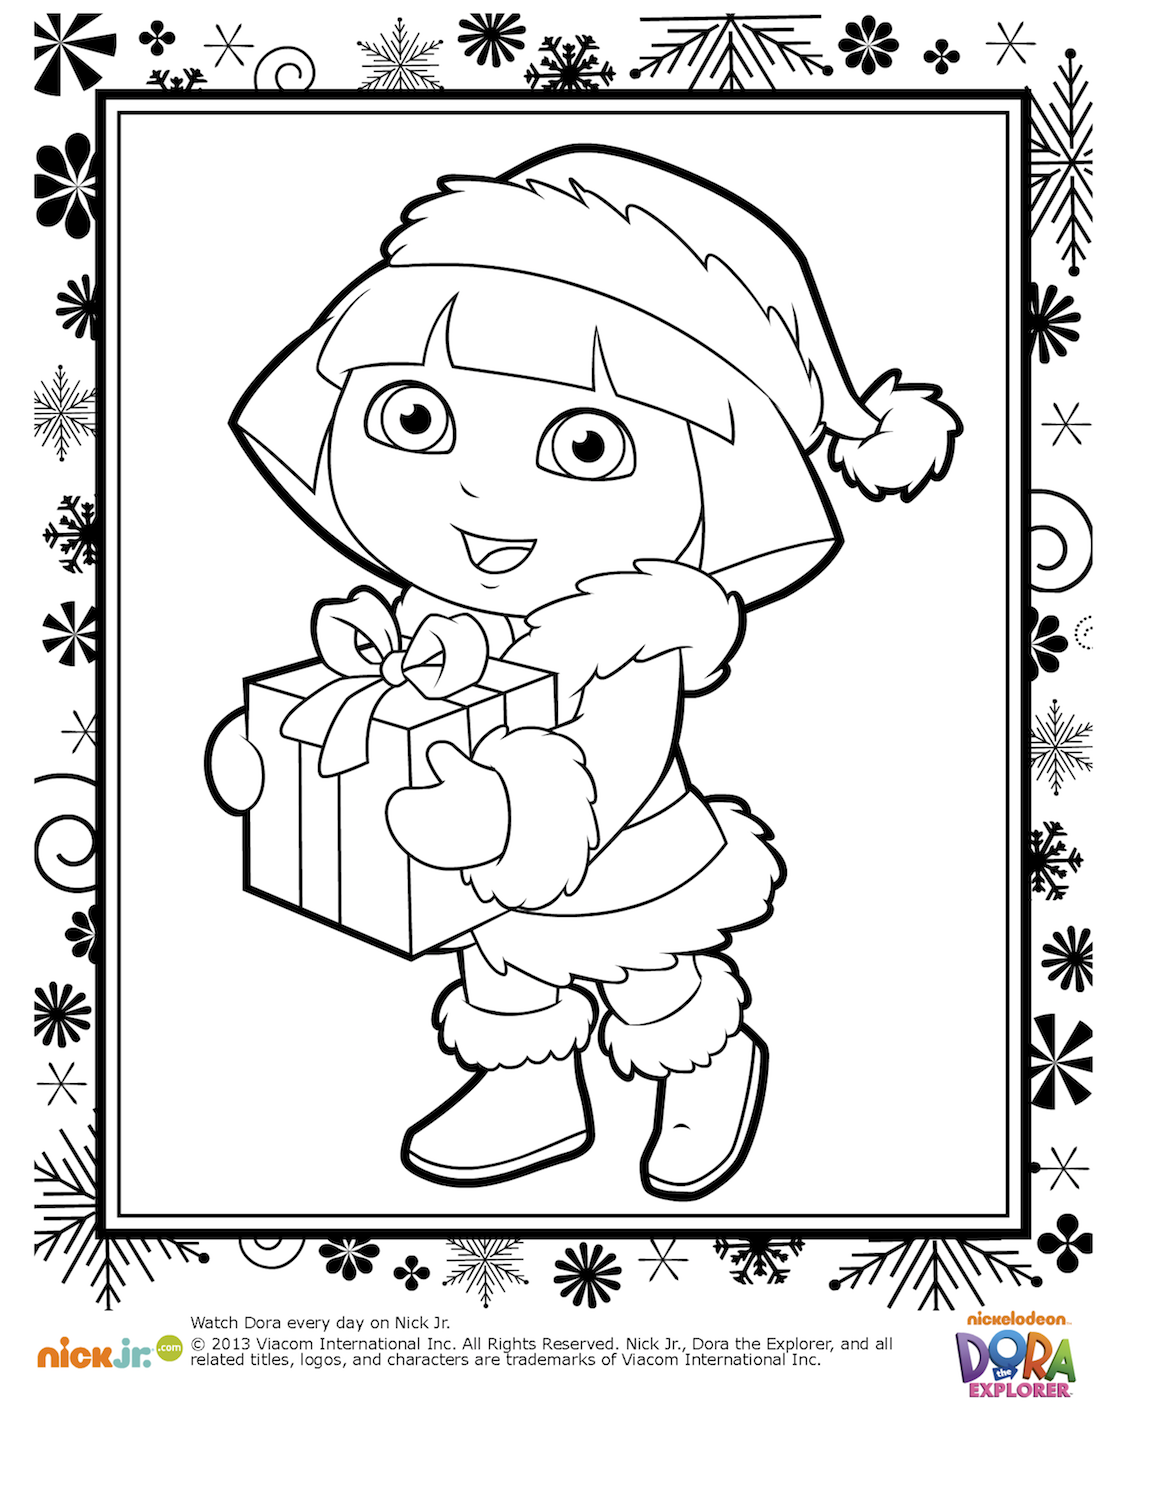 The Link To This Image Is Currently Not Working So In Meantime You Can Download Coloring Page By Right Clicking Your Mouse And Saving Desktop